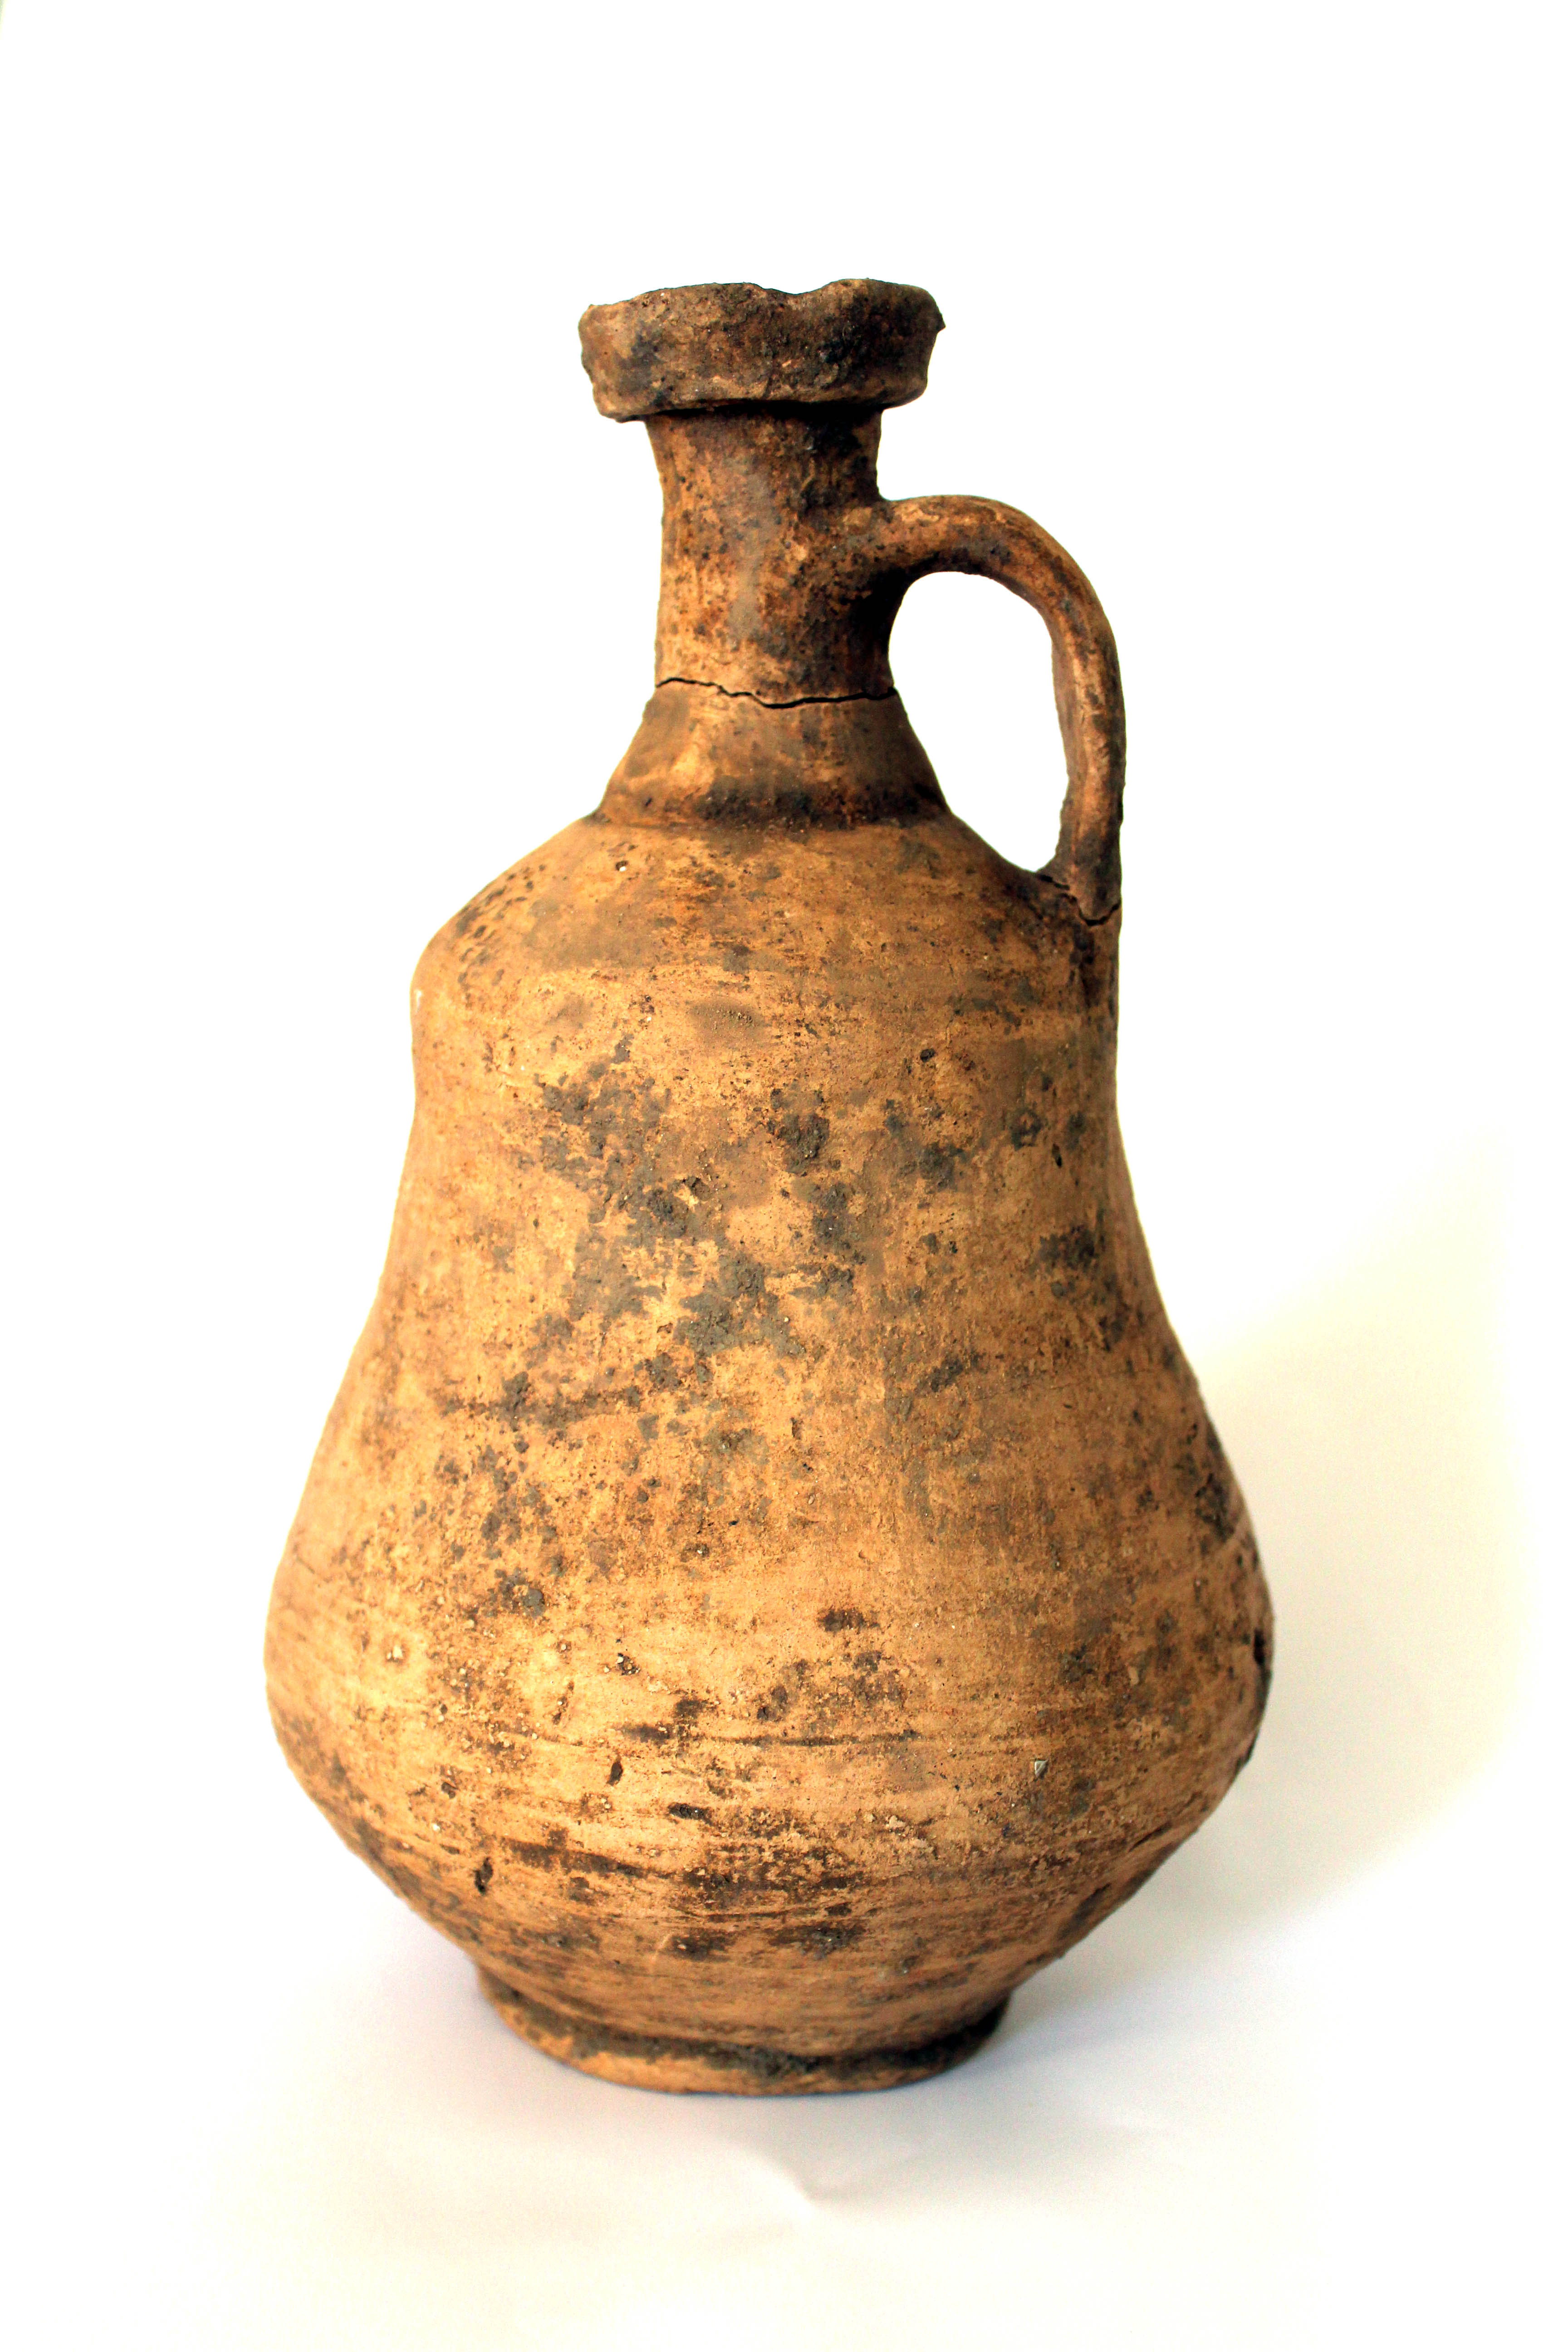 Late Iron Age/Roman flagon Copyright Thames Valley Archaeological Services